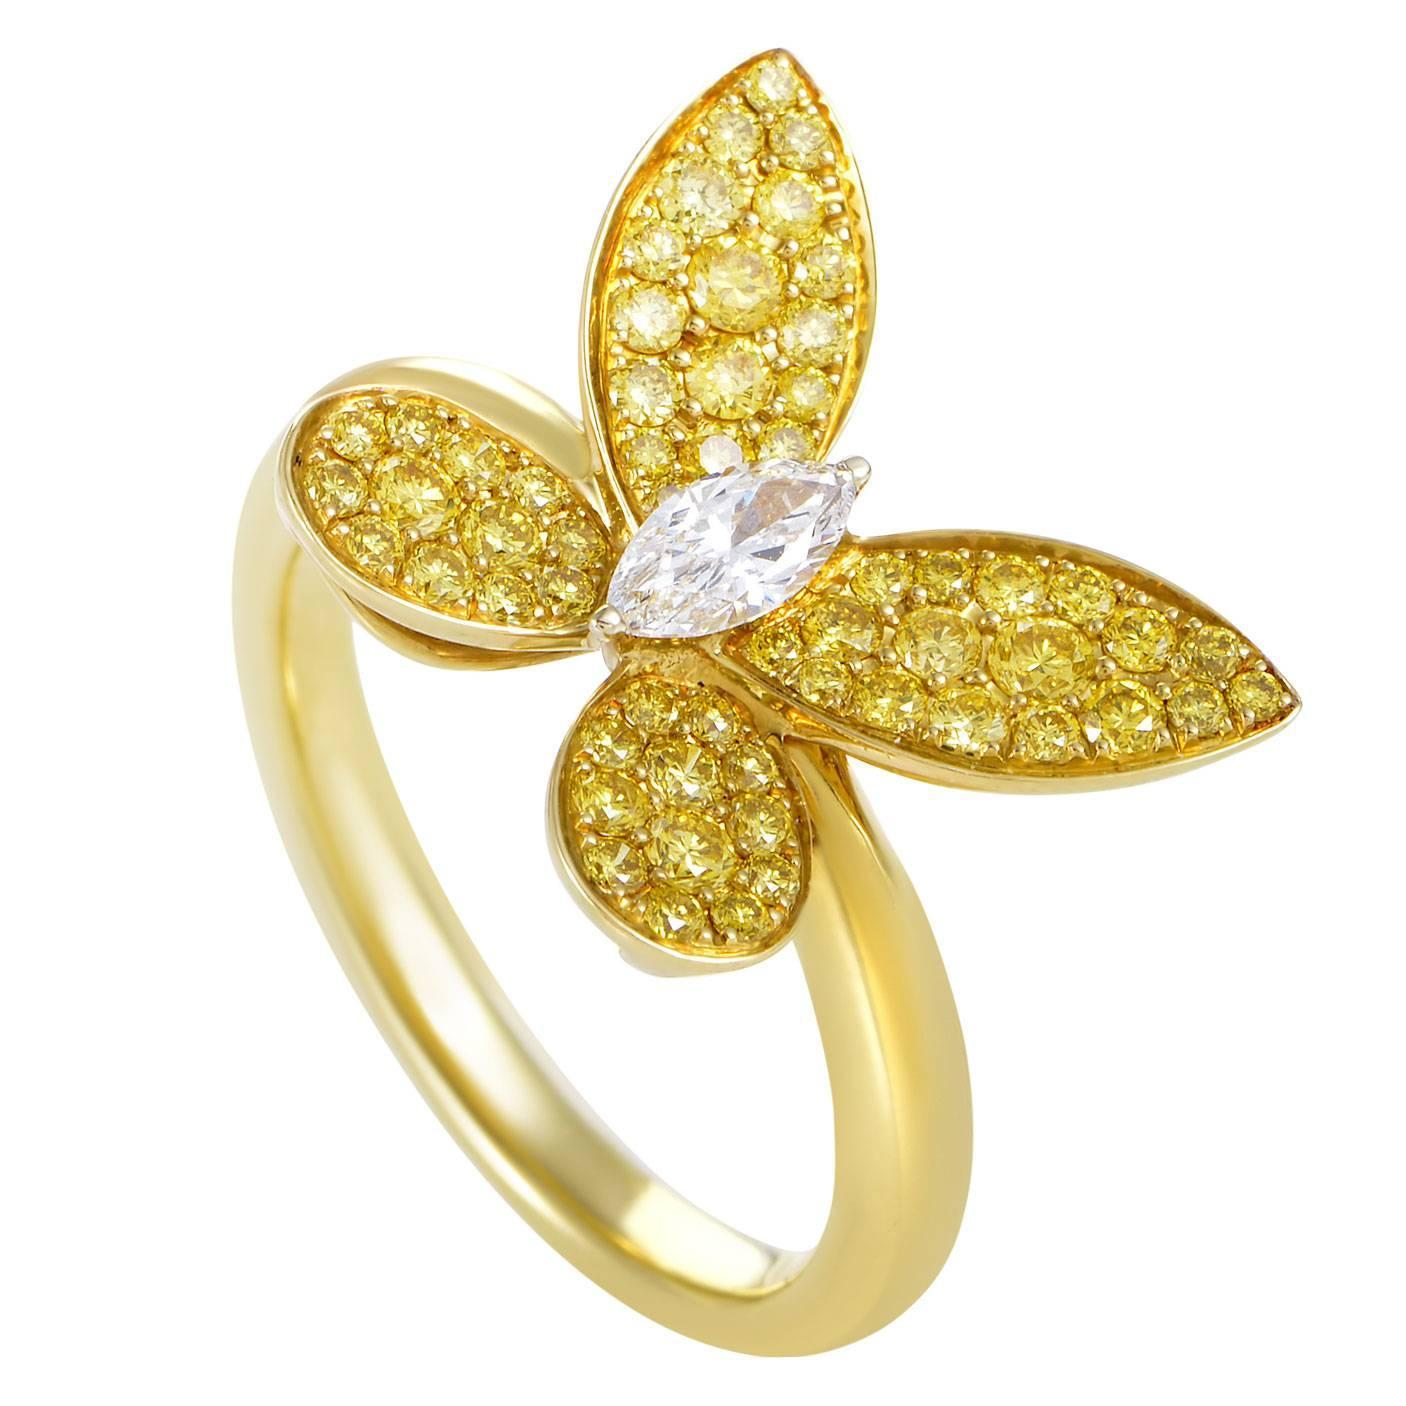 jewelry gold top band rose stone product ring rings plated lovely ladies for women from quality cubic cheap gifts zirconia wedding butterfly